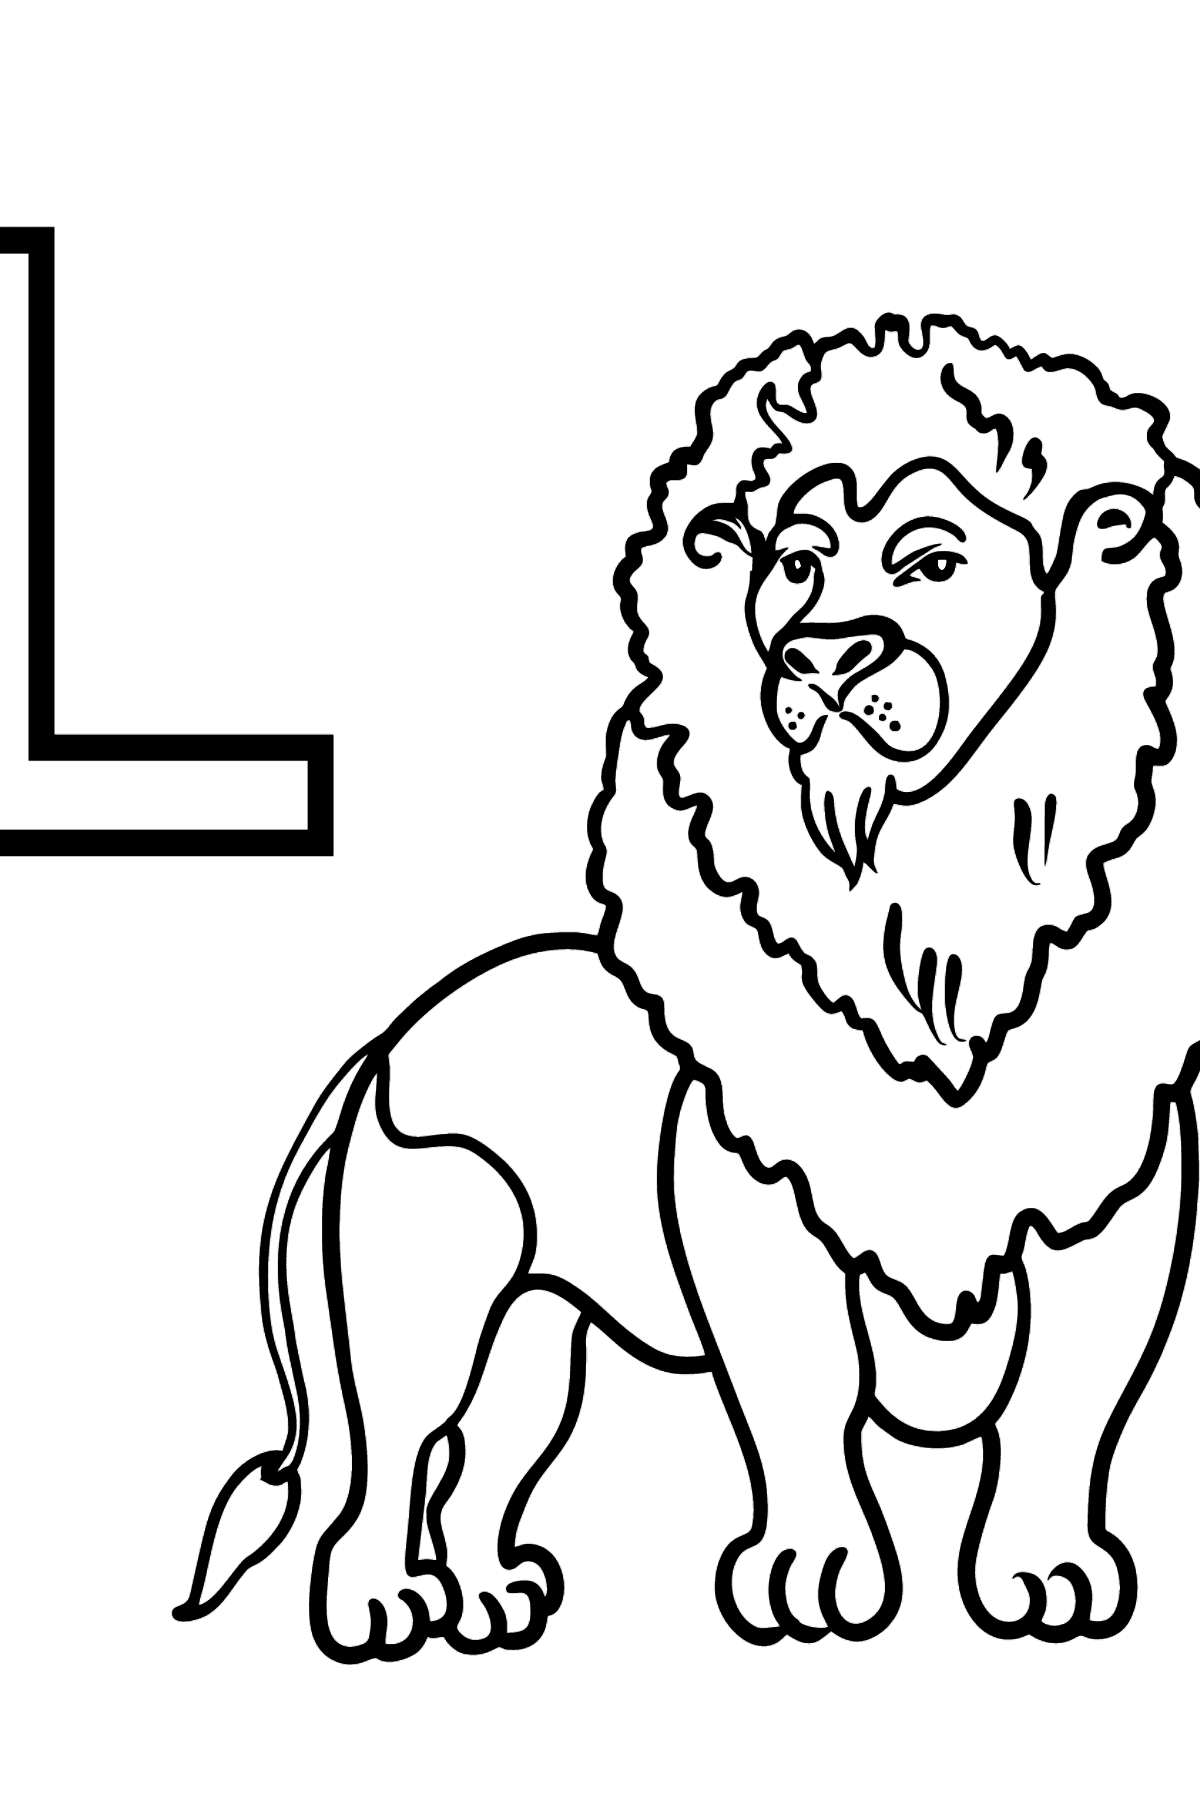 Spanish Letter L coloring pages - LEON - Coloring Pages for Kids